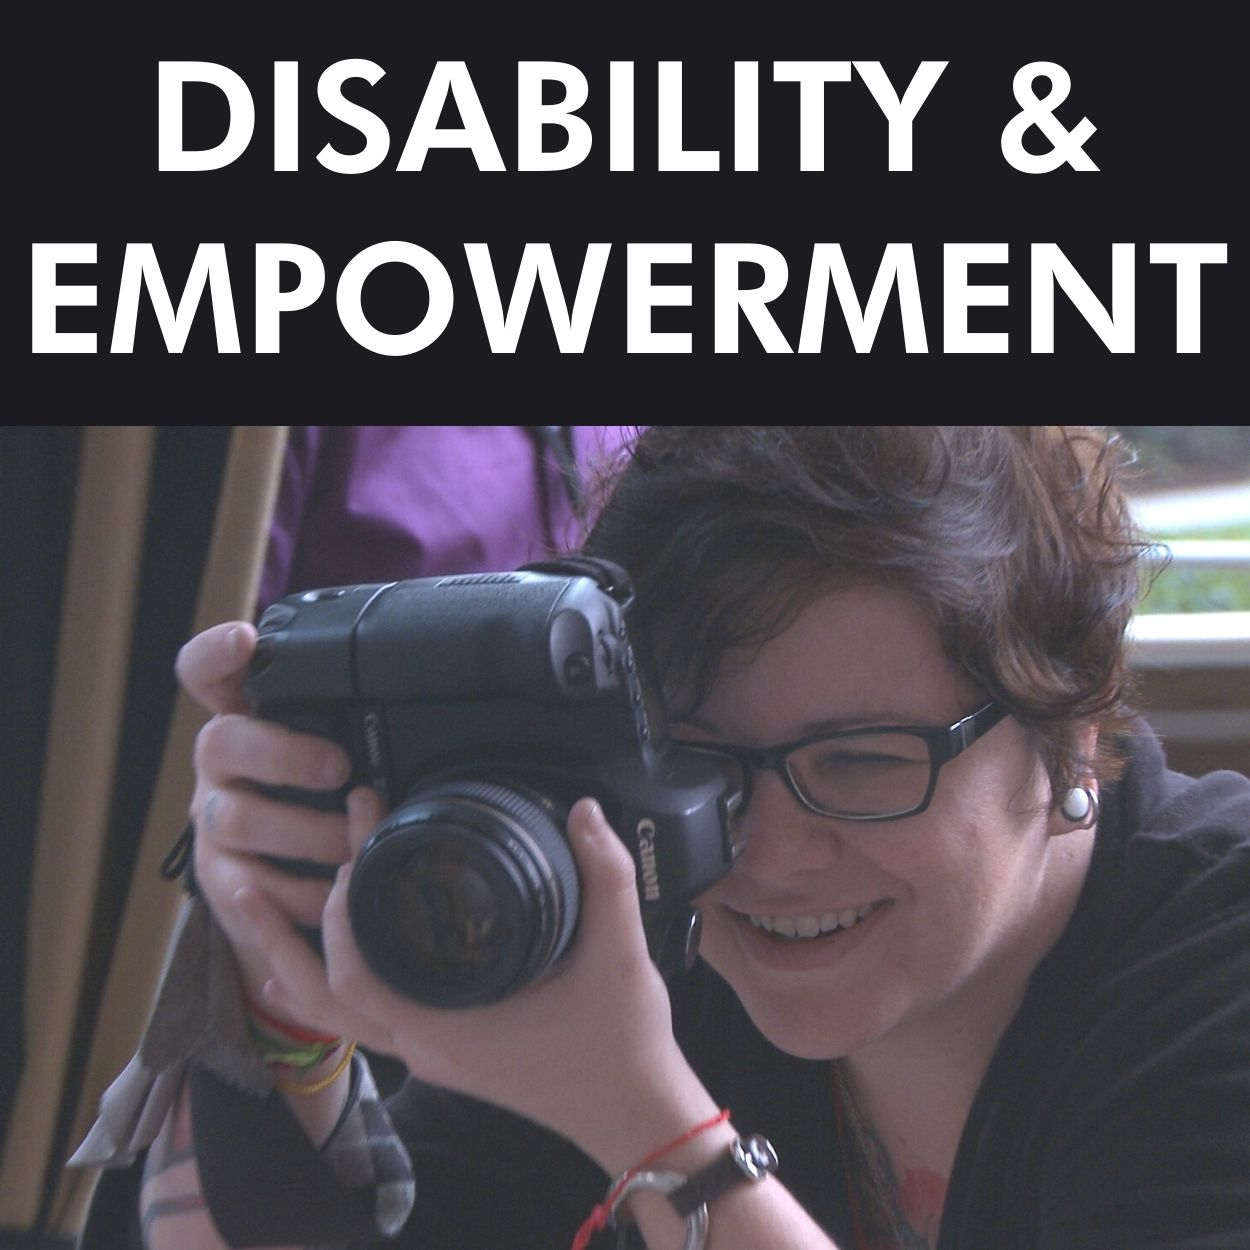 DISABILITY & EMPOWERMENT (5)